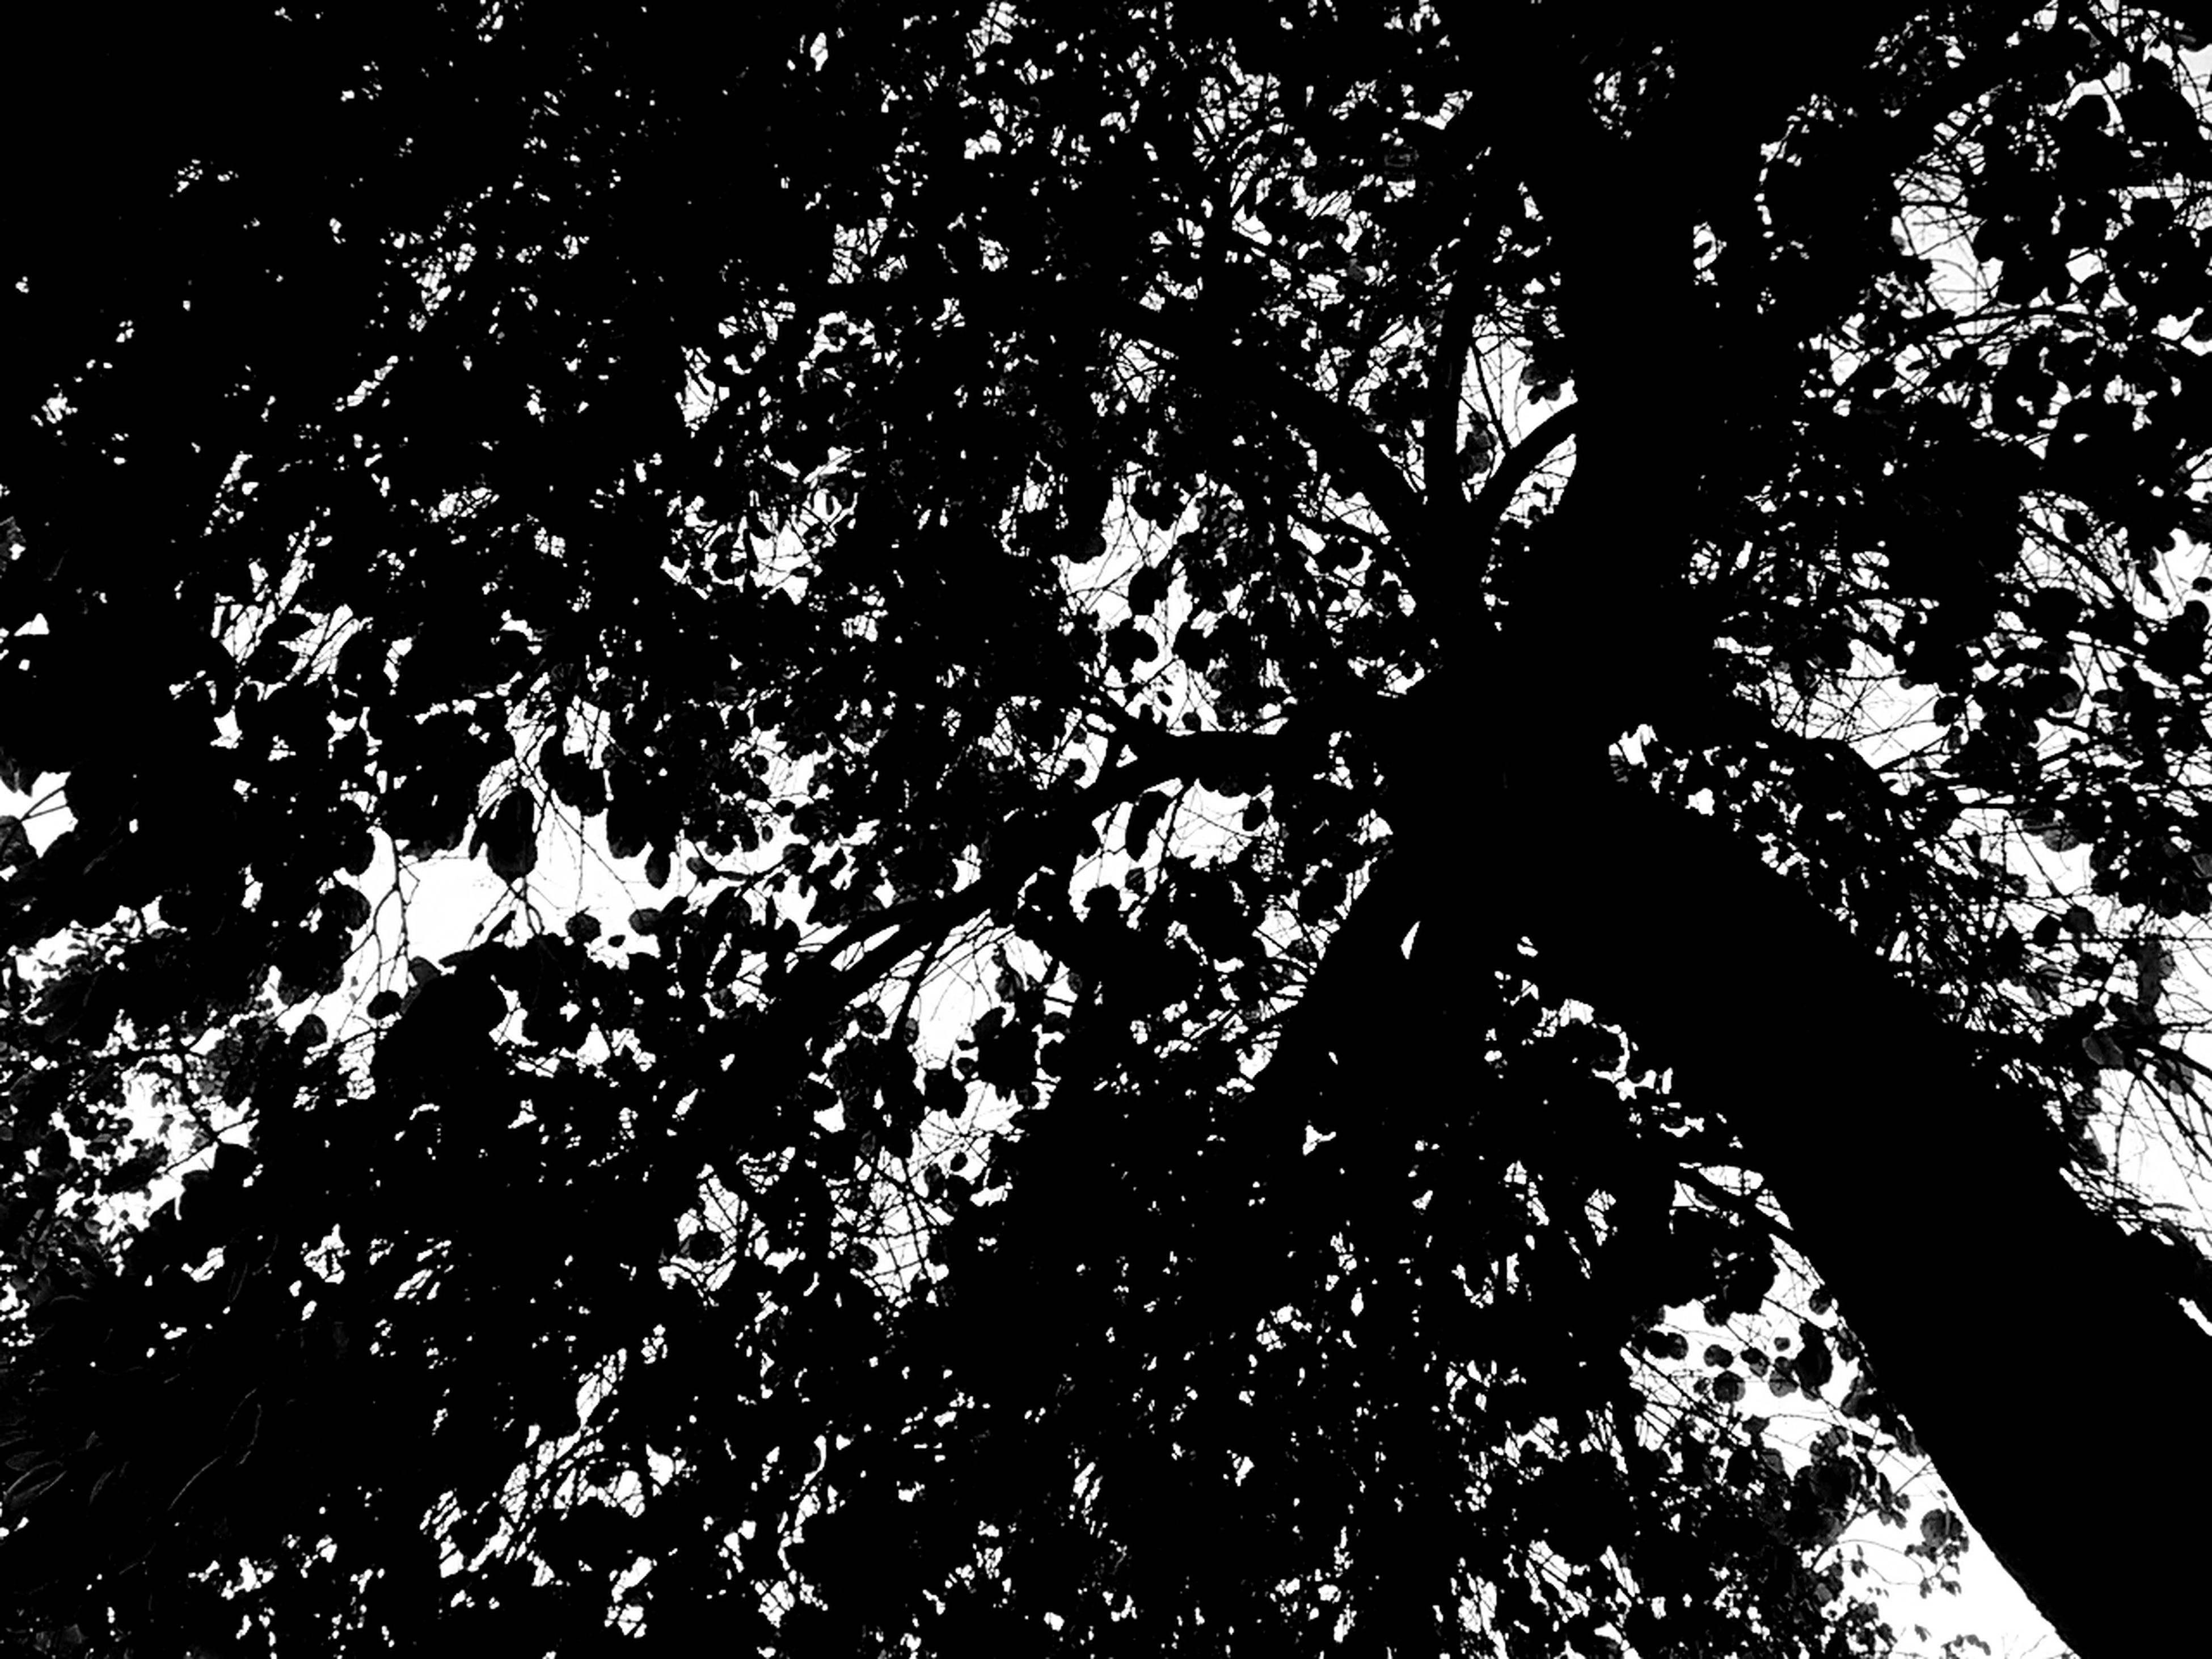 no people, full frame, backgrounds, low angle view, nature, abstract, beauty in nature, close-up, tree, black background, outdoors, sky, day, astronomy